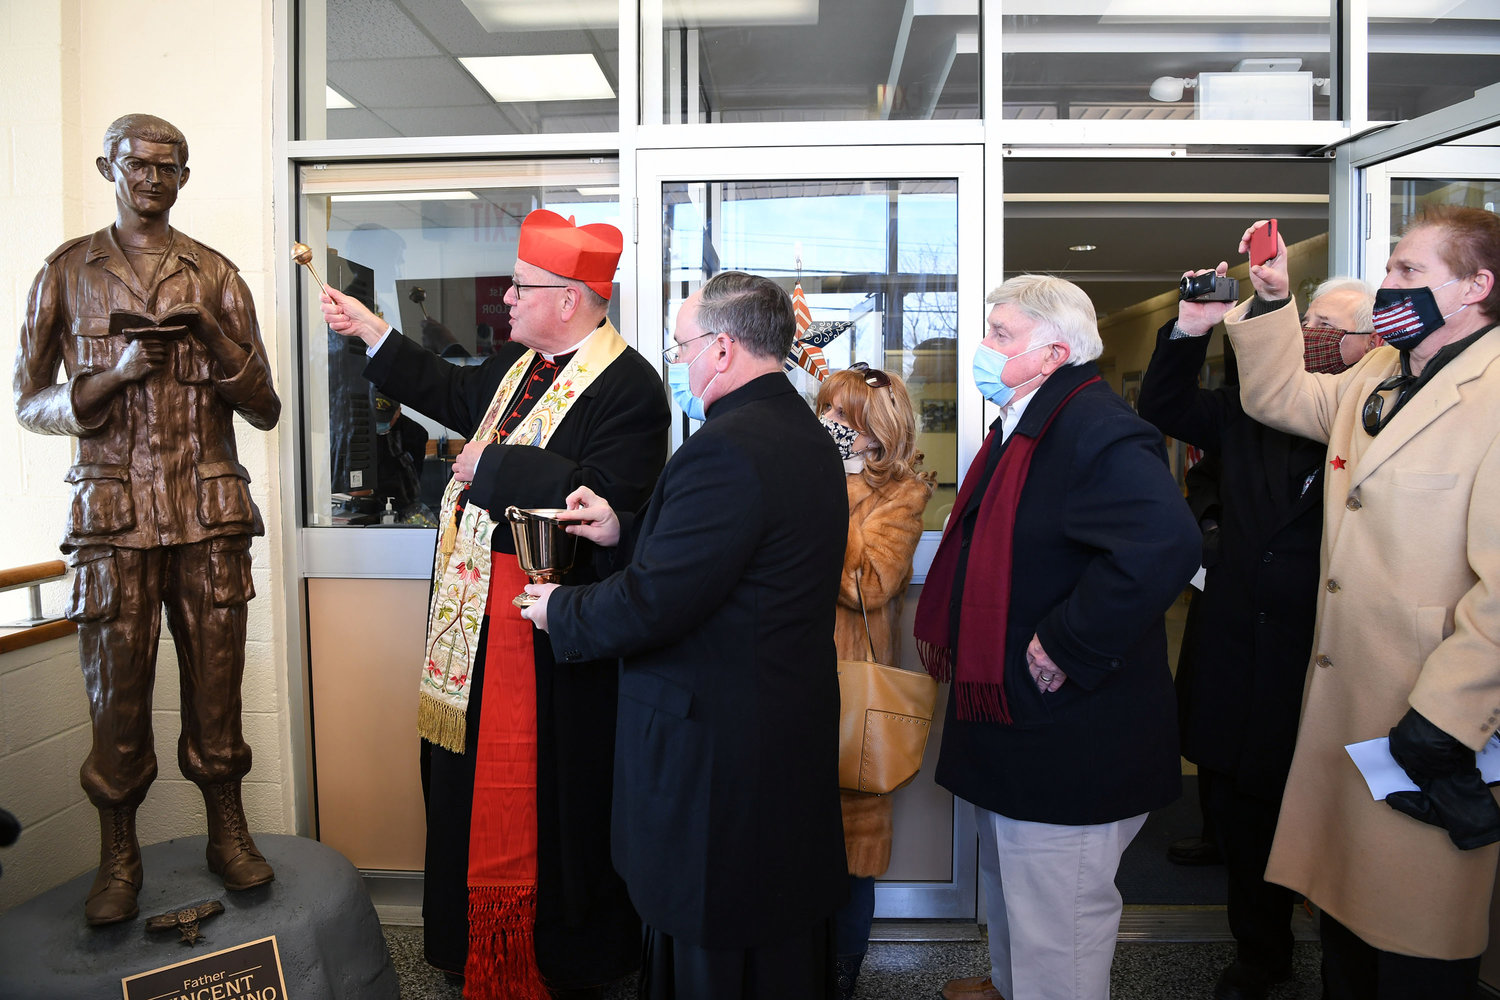 Cardinal Dolan blesses a statue of Father Vincent Capodanno, M.M., in the lobby of Father Vincent Capodanno Catholic Academy on Staten Island Jan. 21. Cardinal Dolan, who dedicated the academy in the same ceremony, is assisted by Father Michael Martine, pastor of Holy Rosary parish on Staten Island. The academy opened in September after the merger of Holy Rosary and St. Adalbert schools for the 2020-2021 school year.